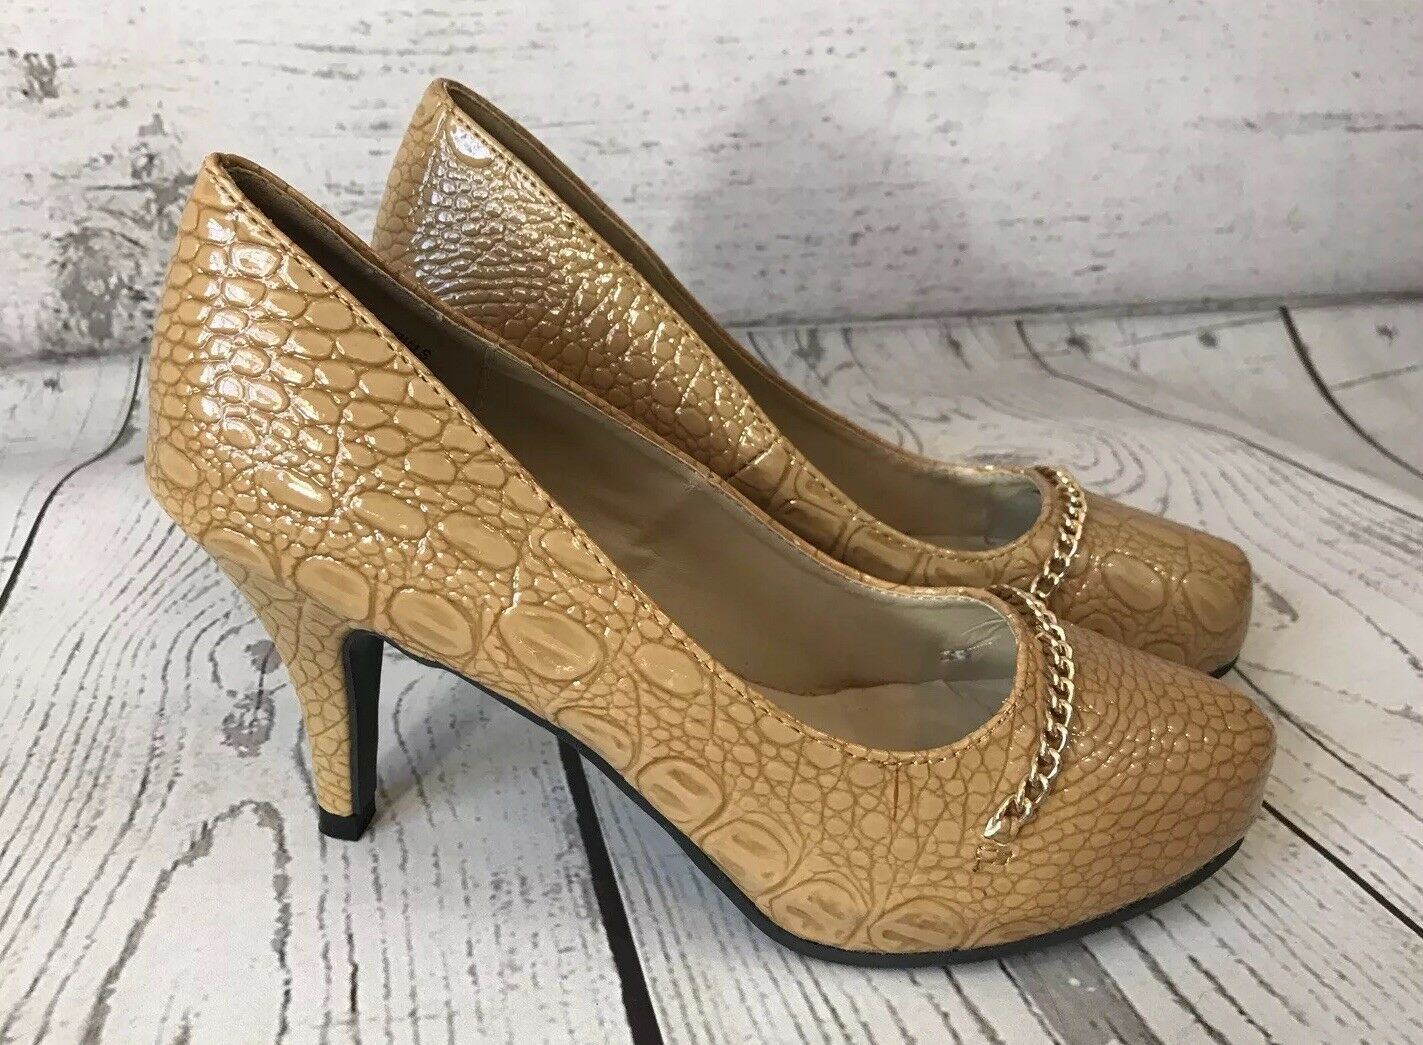 New Classique 7 W Tan Camel Pumps Embossed Snakeskin Round Toe gold Chain 3 1 2